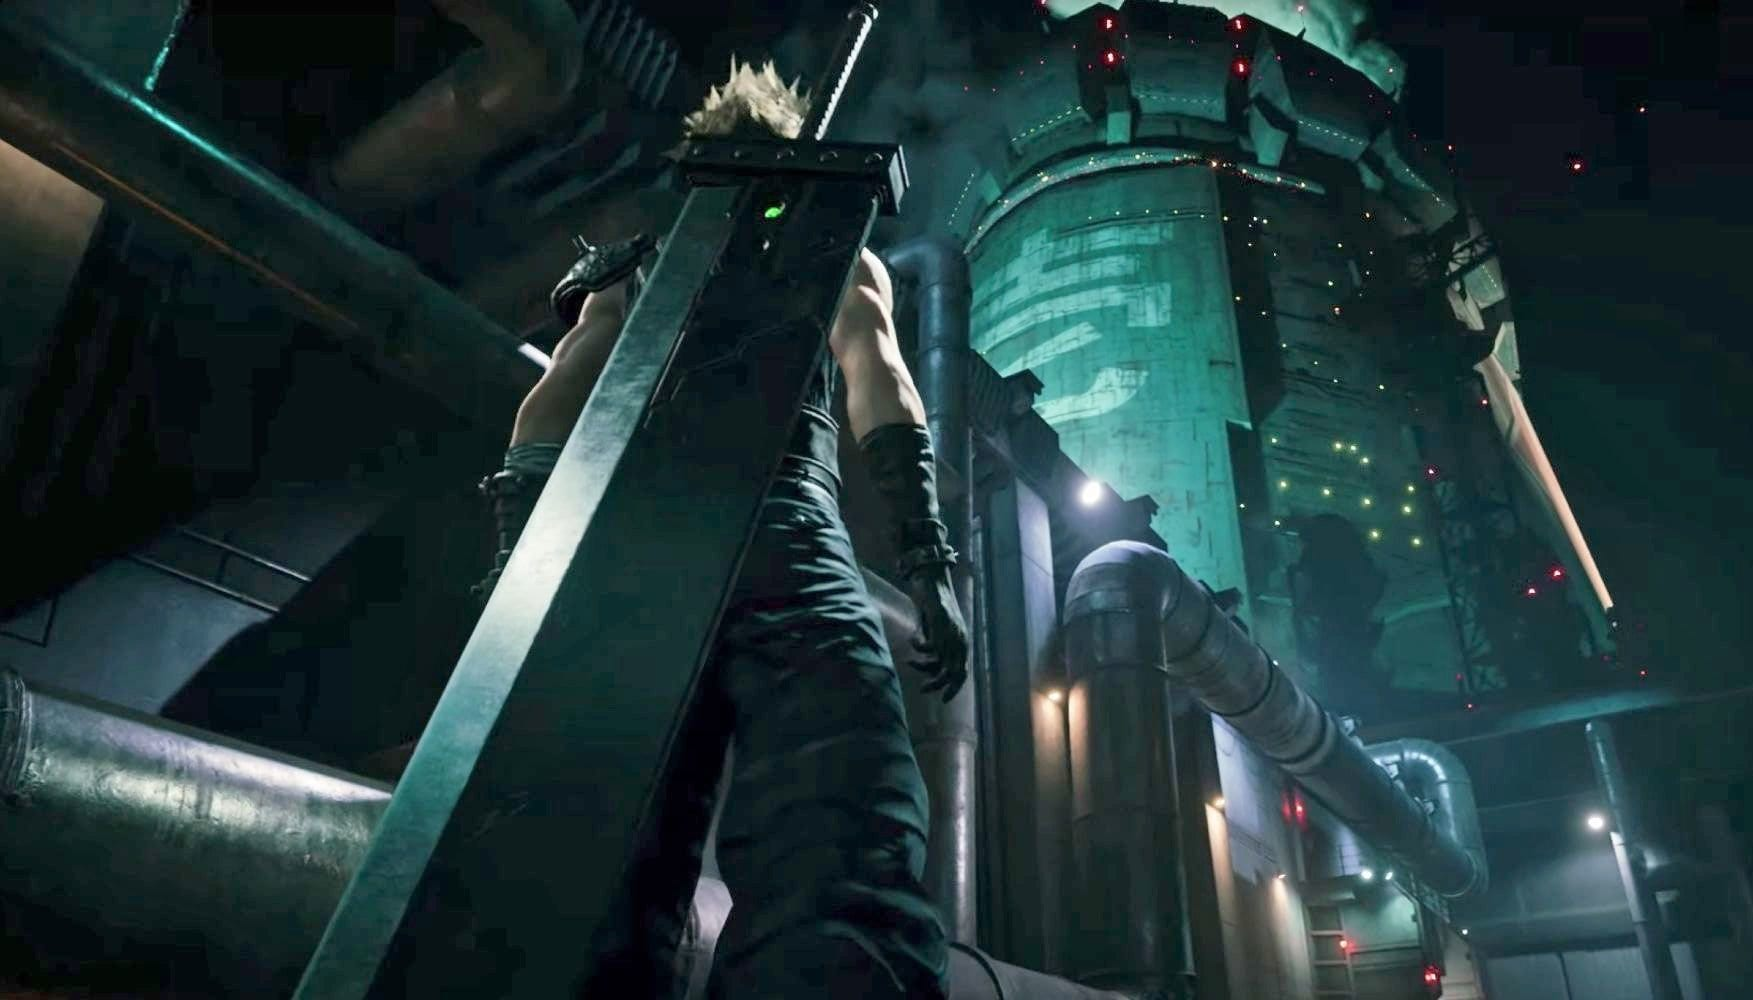 Opening the mini map in Final Fantasy VII Remake